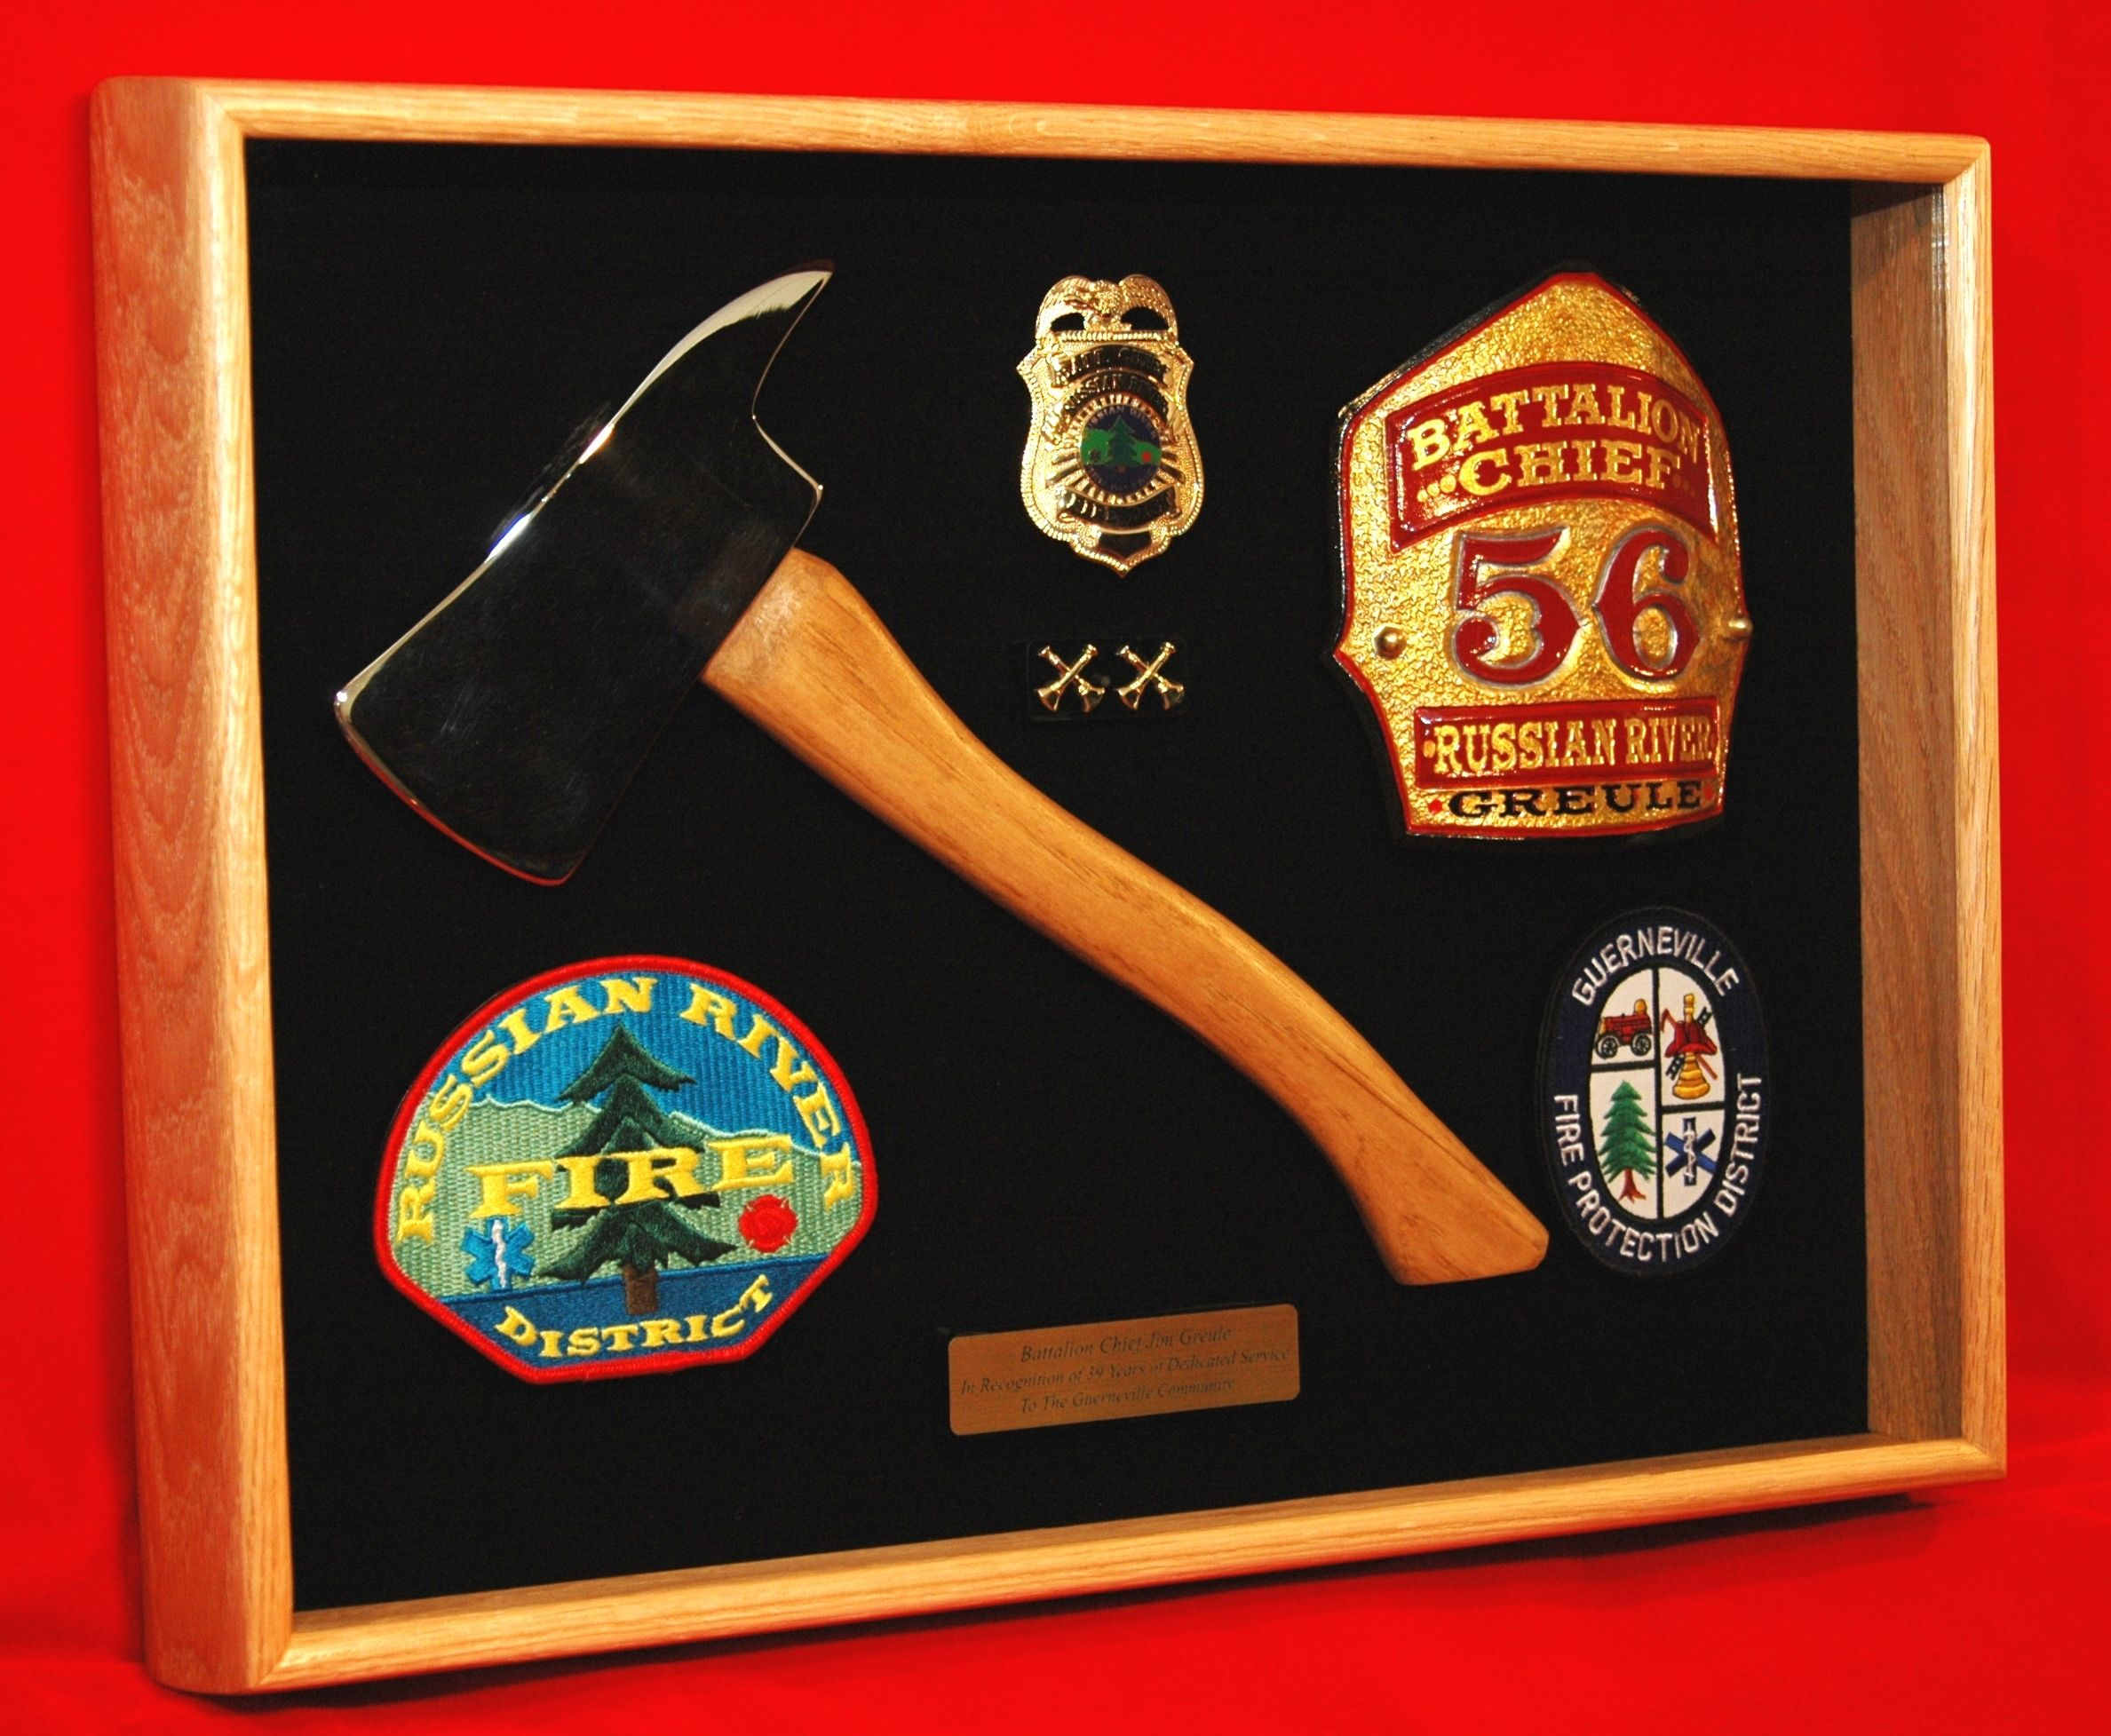 firefighter shadow box family search retirement made by shadowboxusa com this shadow box includes a small axe to represent this